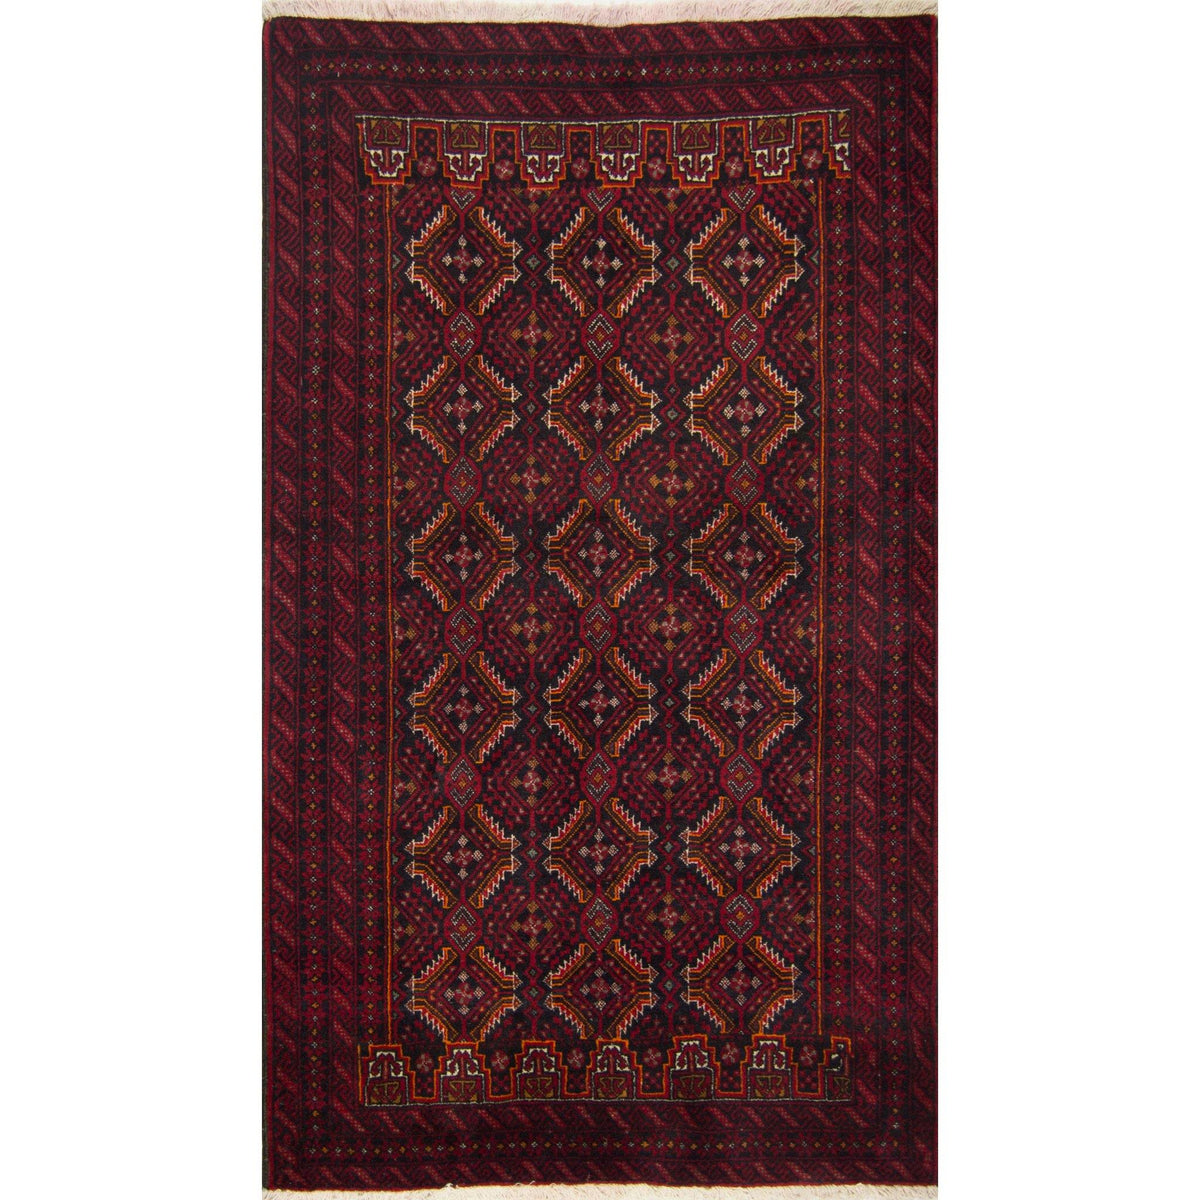 Fine Hand-knotted Persian Wool Baluchi Rug 108cm x 195cm Persian-Rug | House-of-Haghi | NewMarket | Auckland | NZ | Handmade Persian Rugs | Hand Knotted Persian Rugs